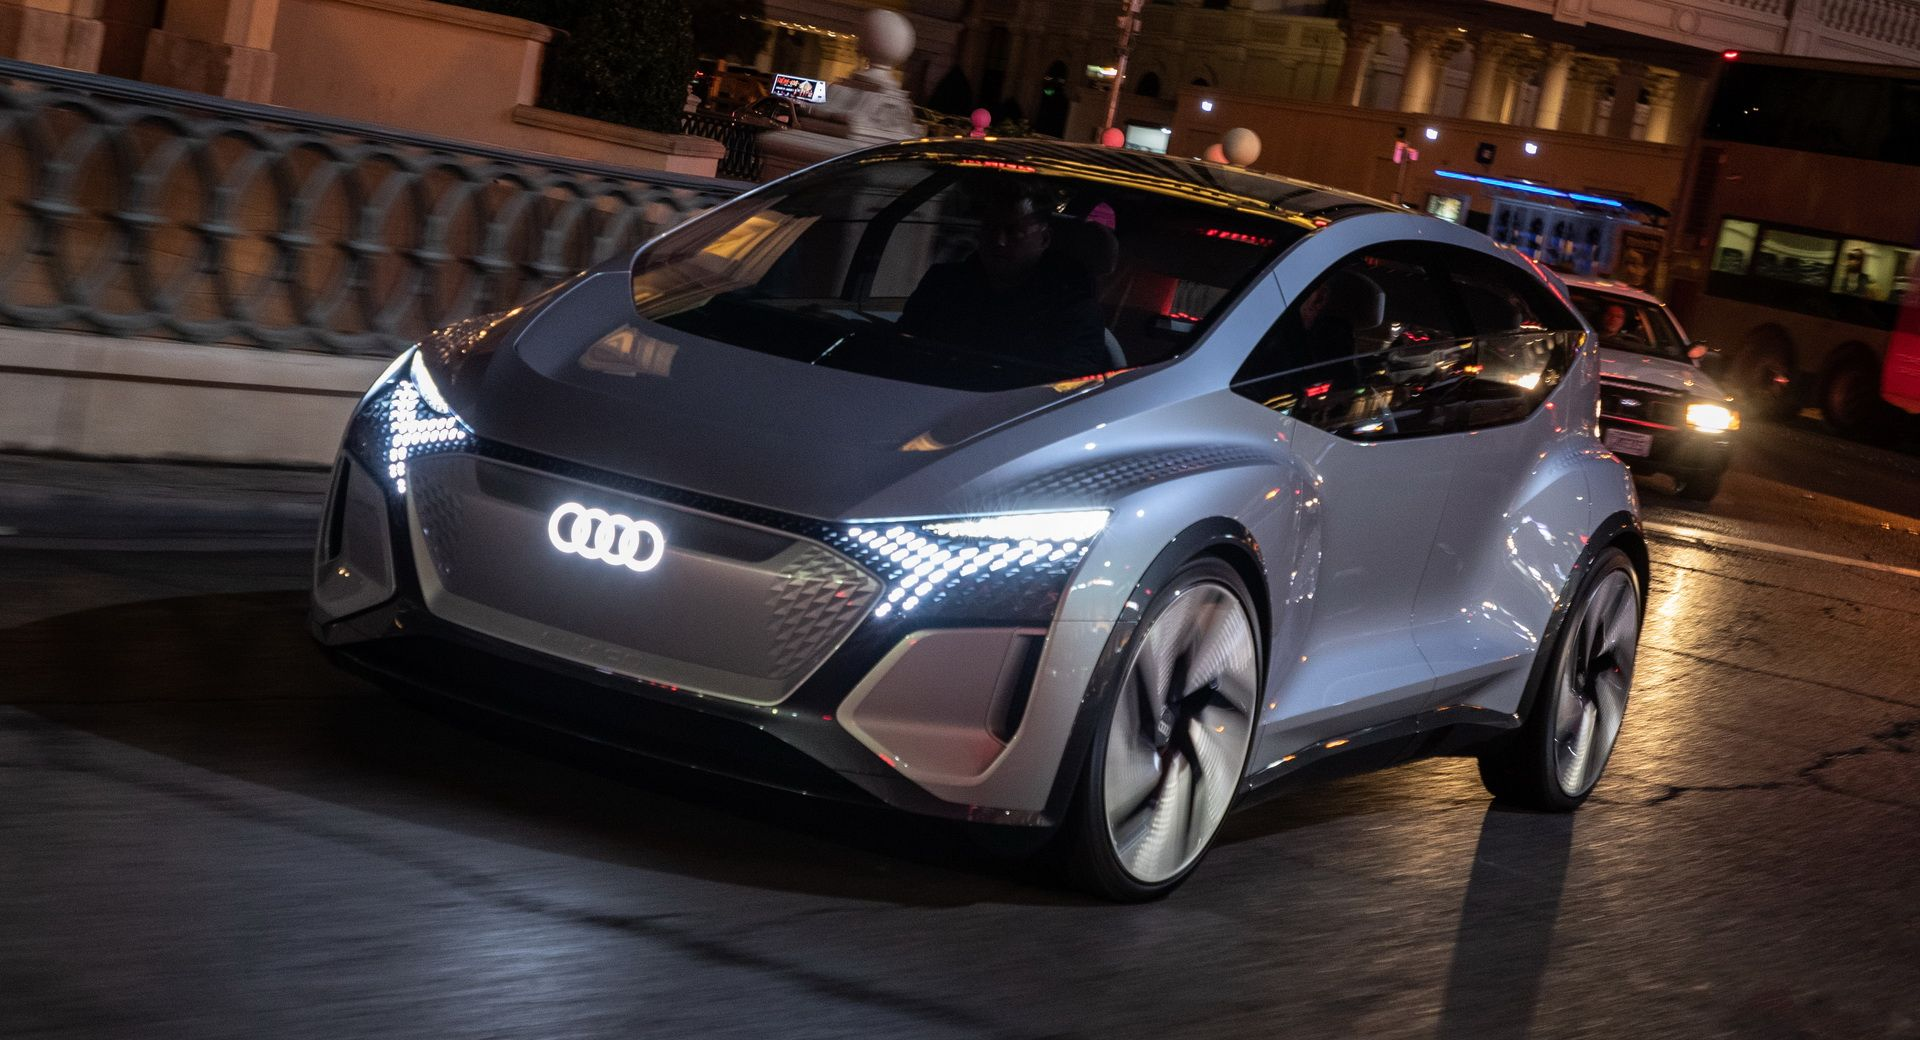 Audi's Futuristic Take On The VW ID.3 EV, The AI:ME, Hits The Las Vegas Strip